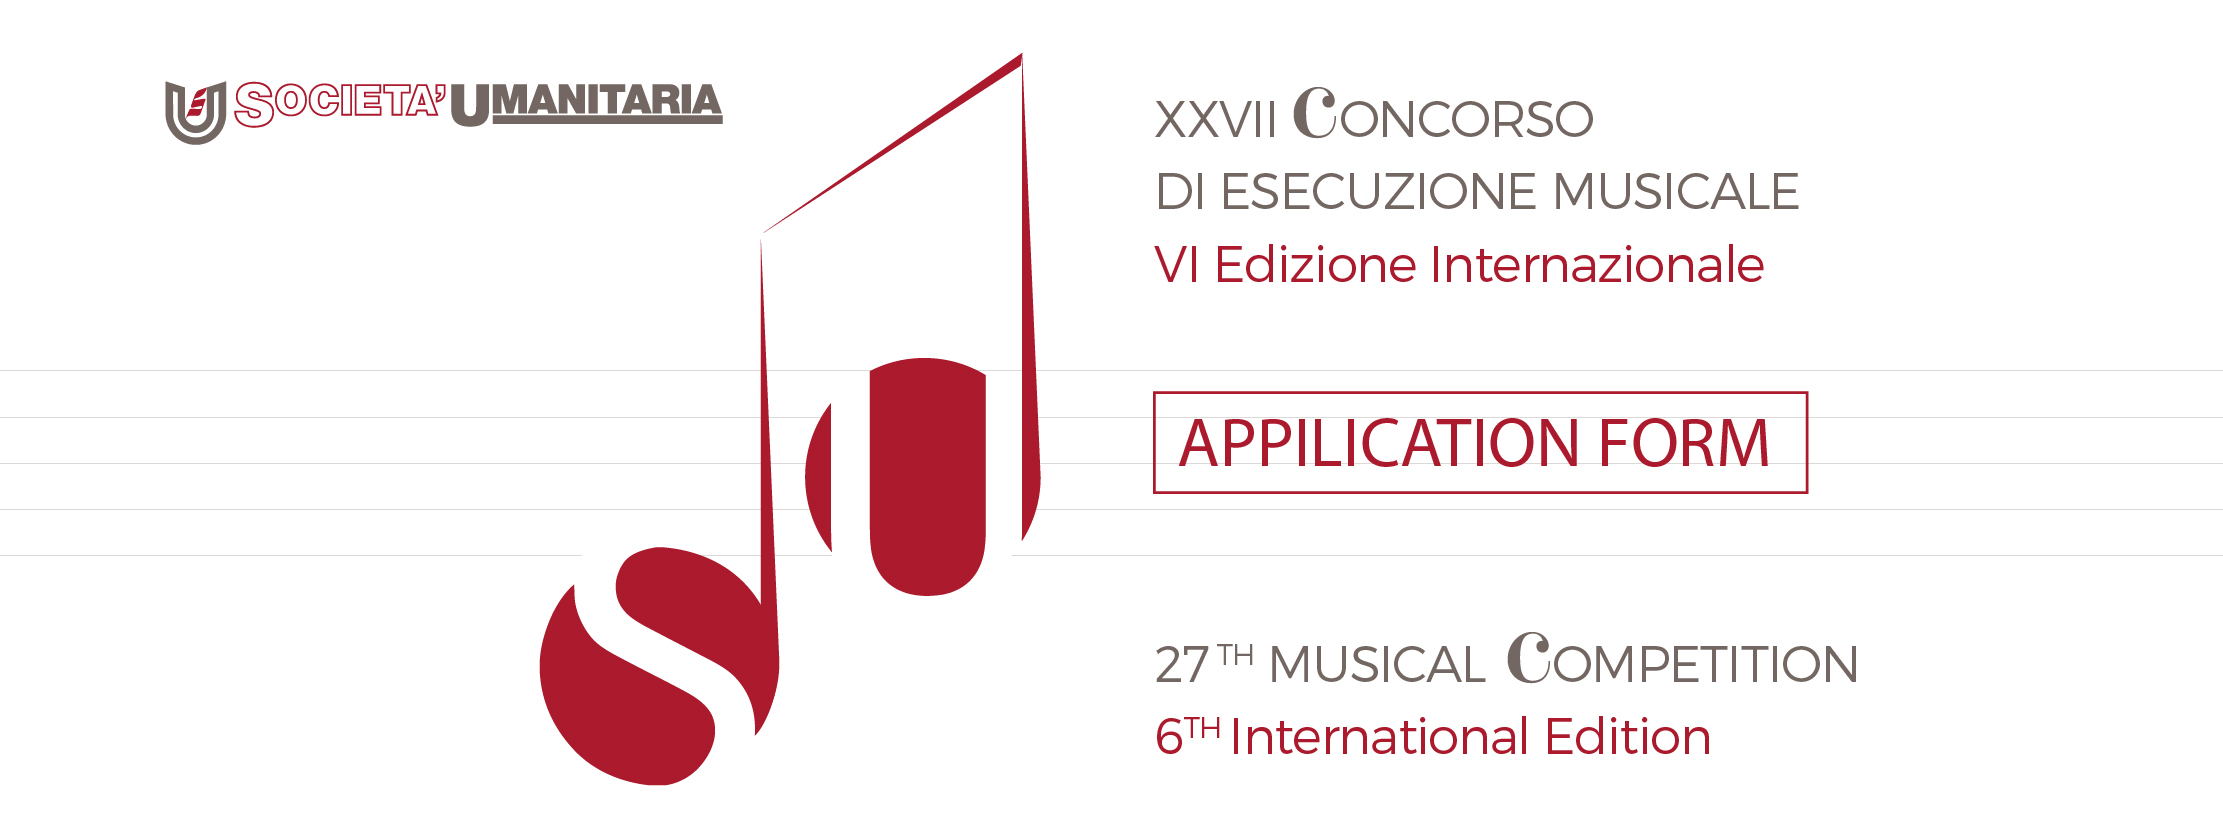 Logo Concorso APPLICATION FORM2x